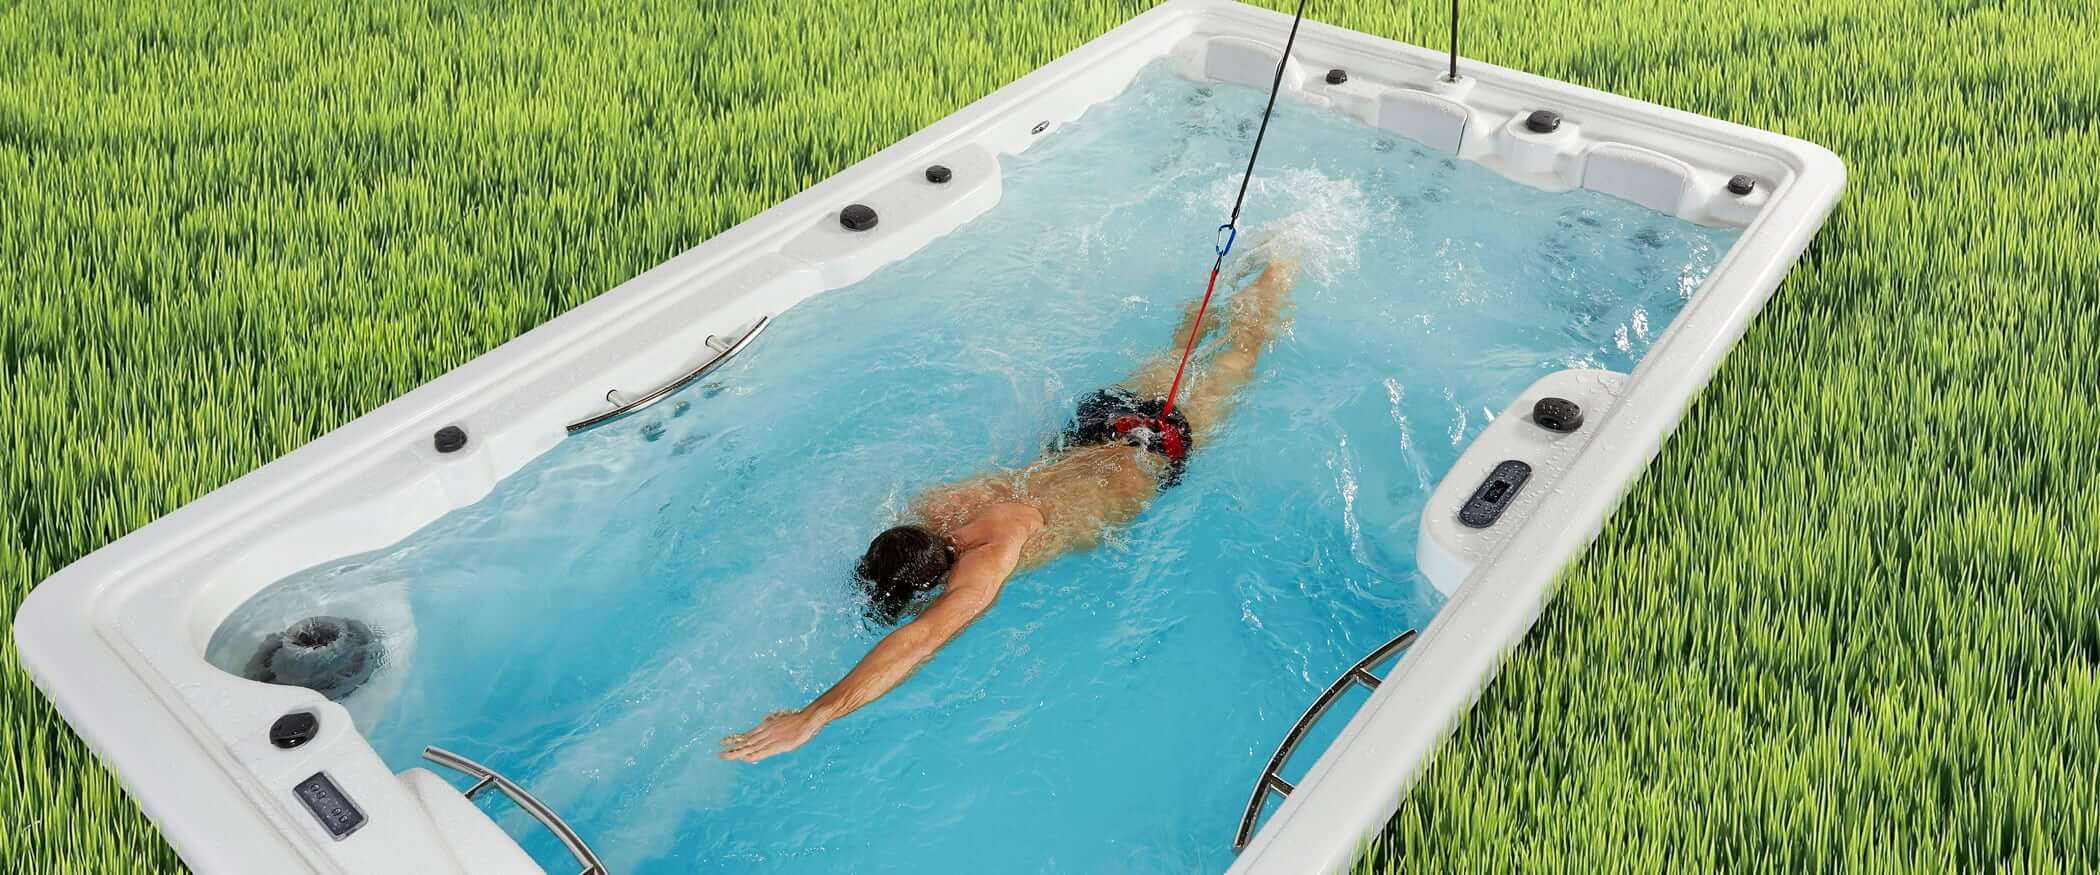 Buy The In Ground Swimspa Fitness Spa Aquavia Spa Uk